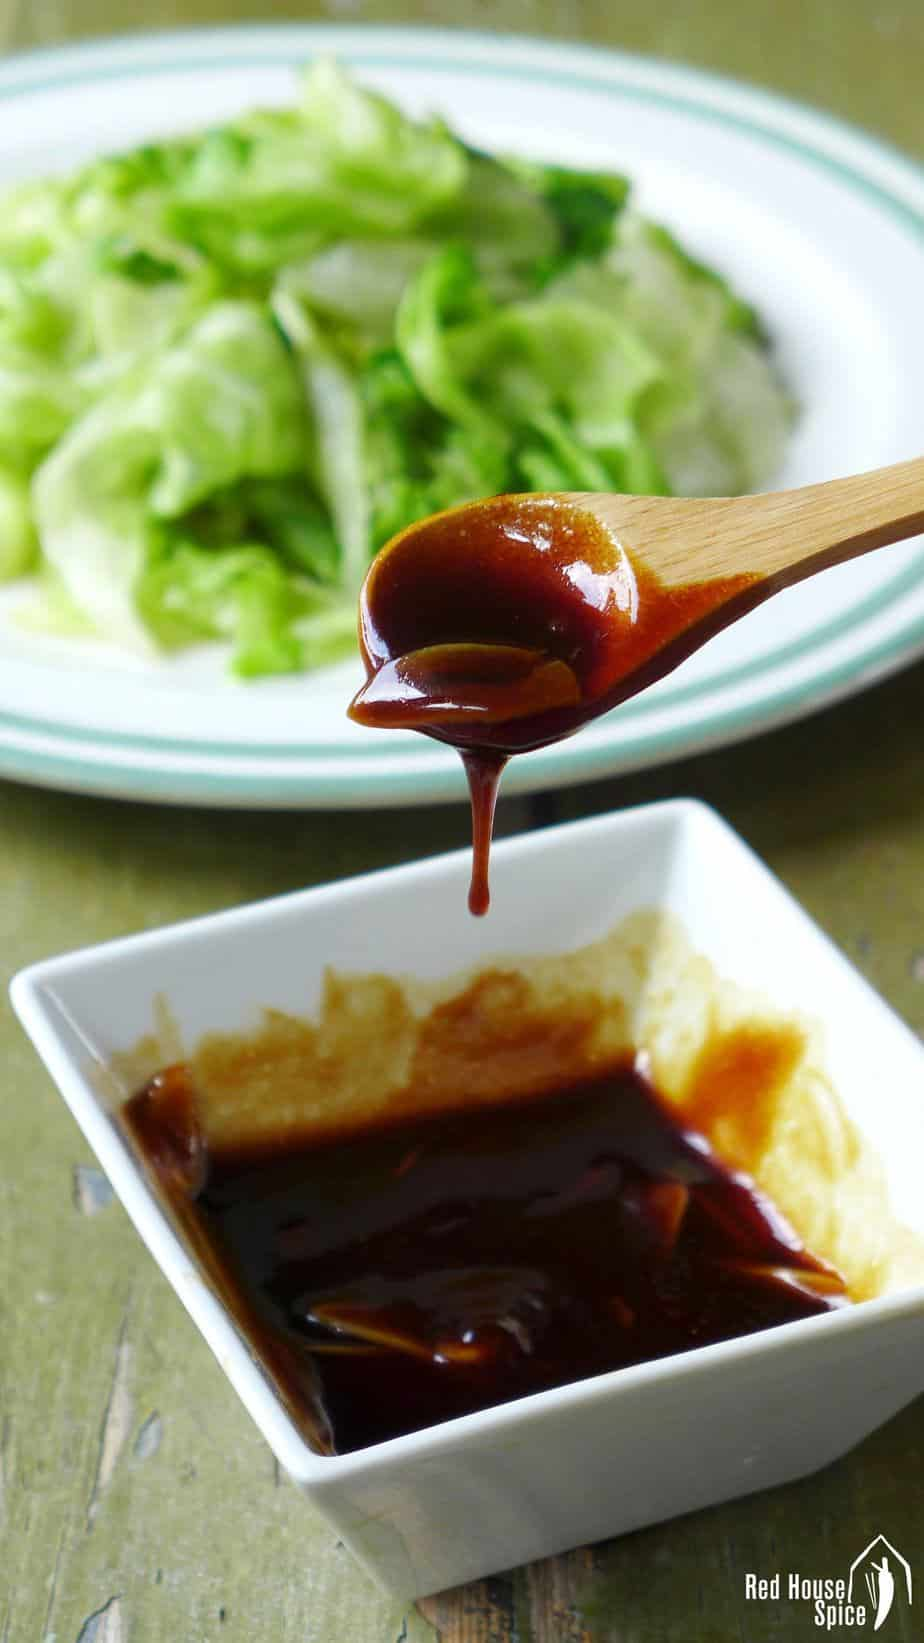 Oyster sauce with sliced garlic